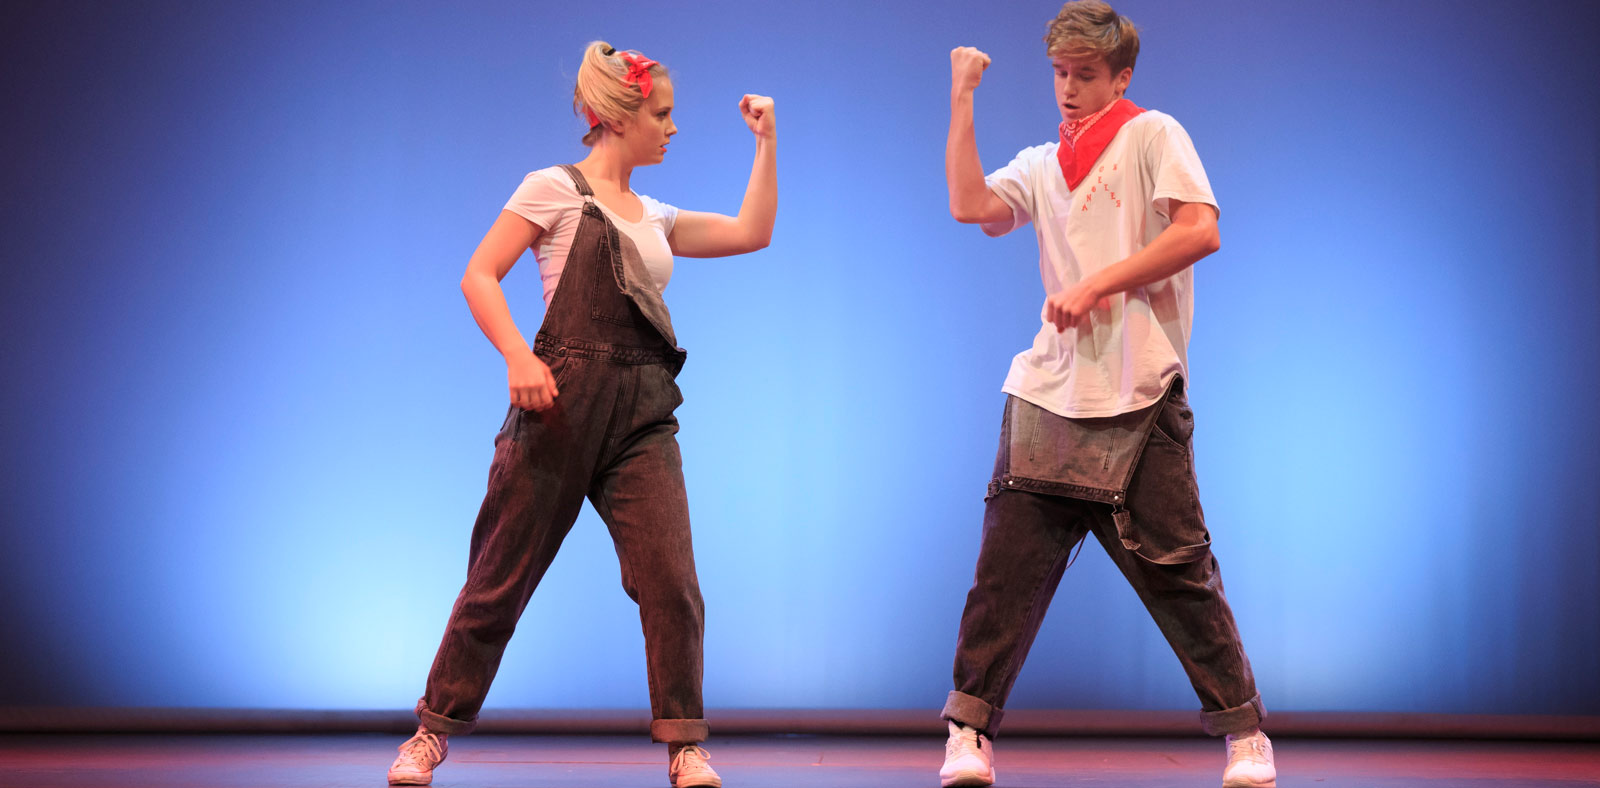 Saint-Kentigern-Senior-College-Dance-Showcase-Programme1.jpg